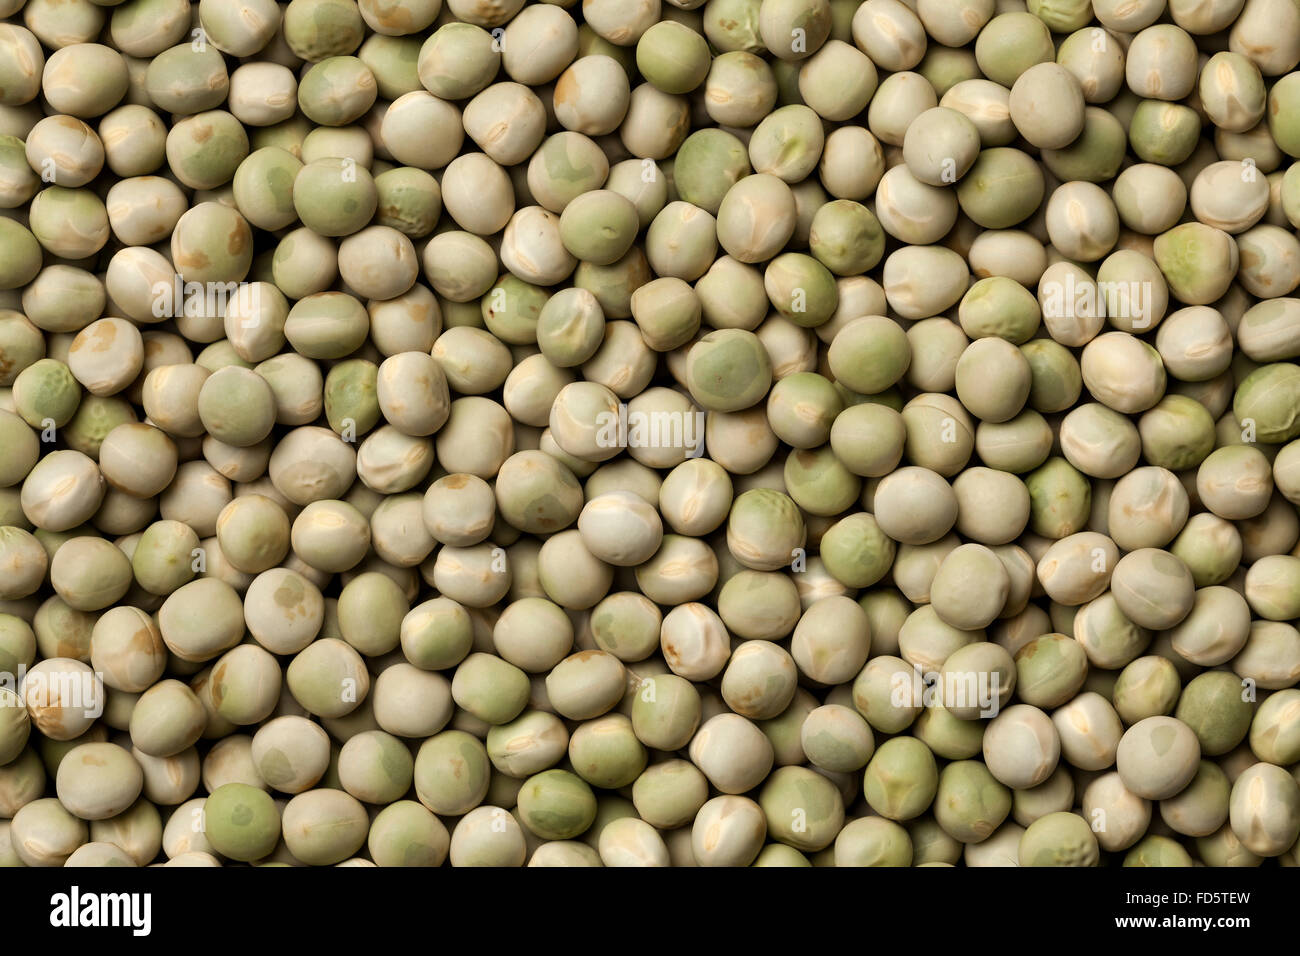 Whole dried green peas full frame - Stock Image